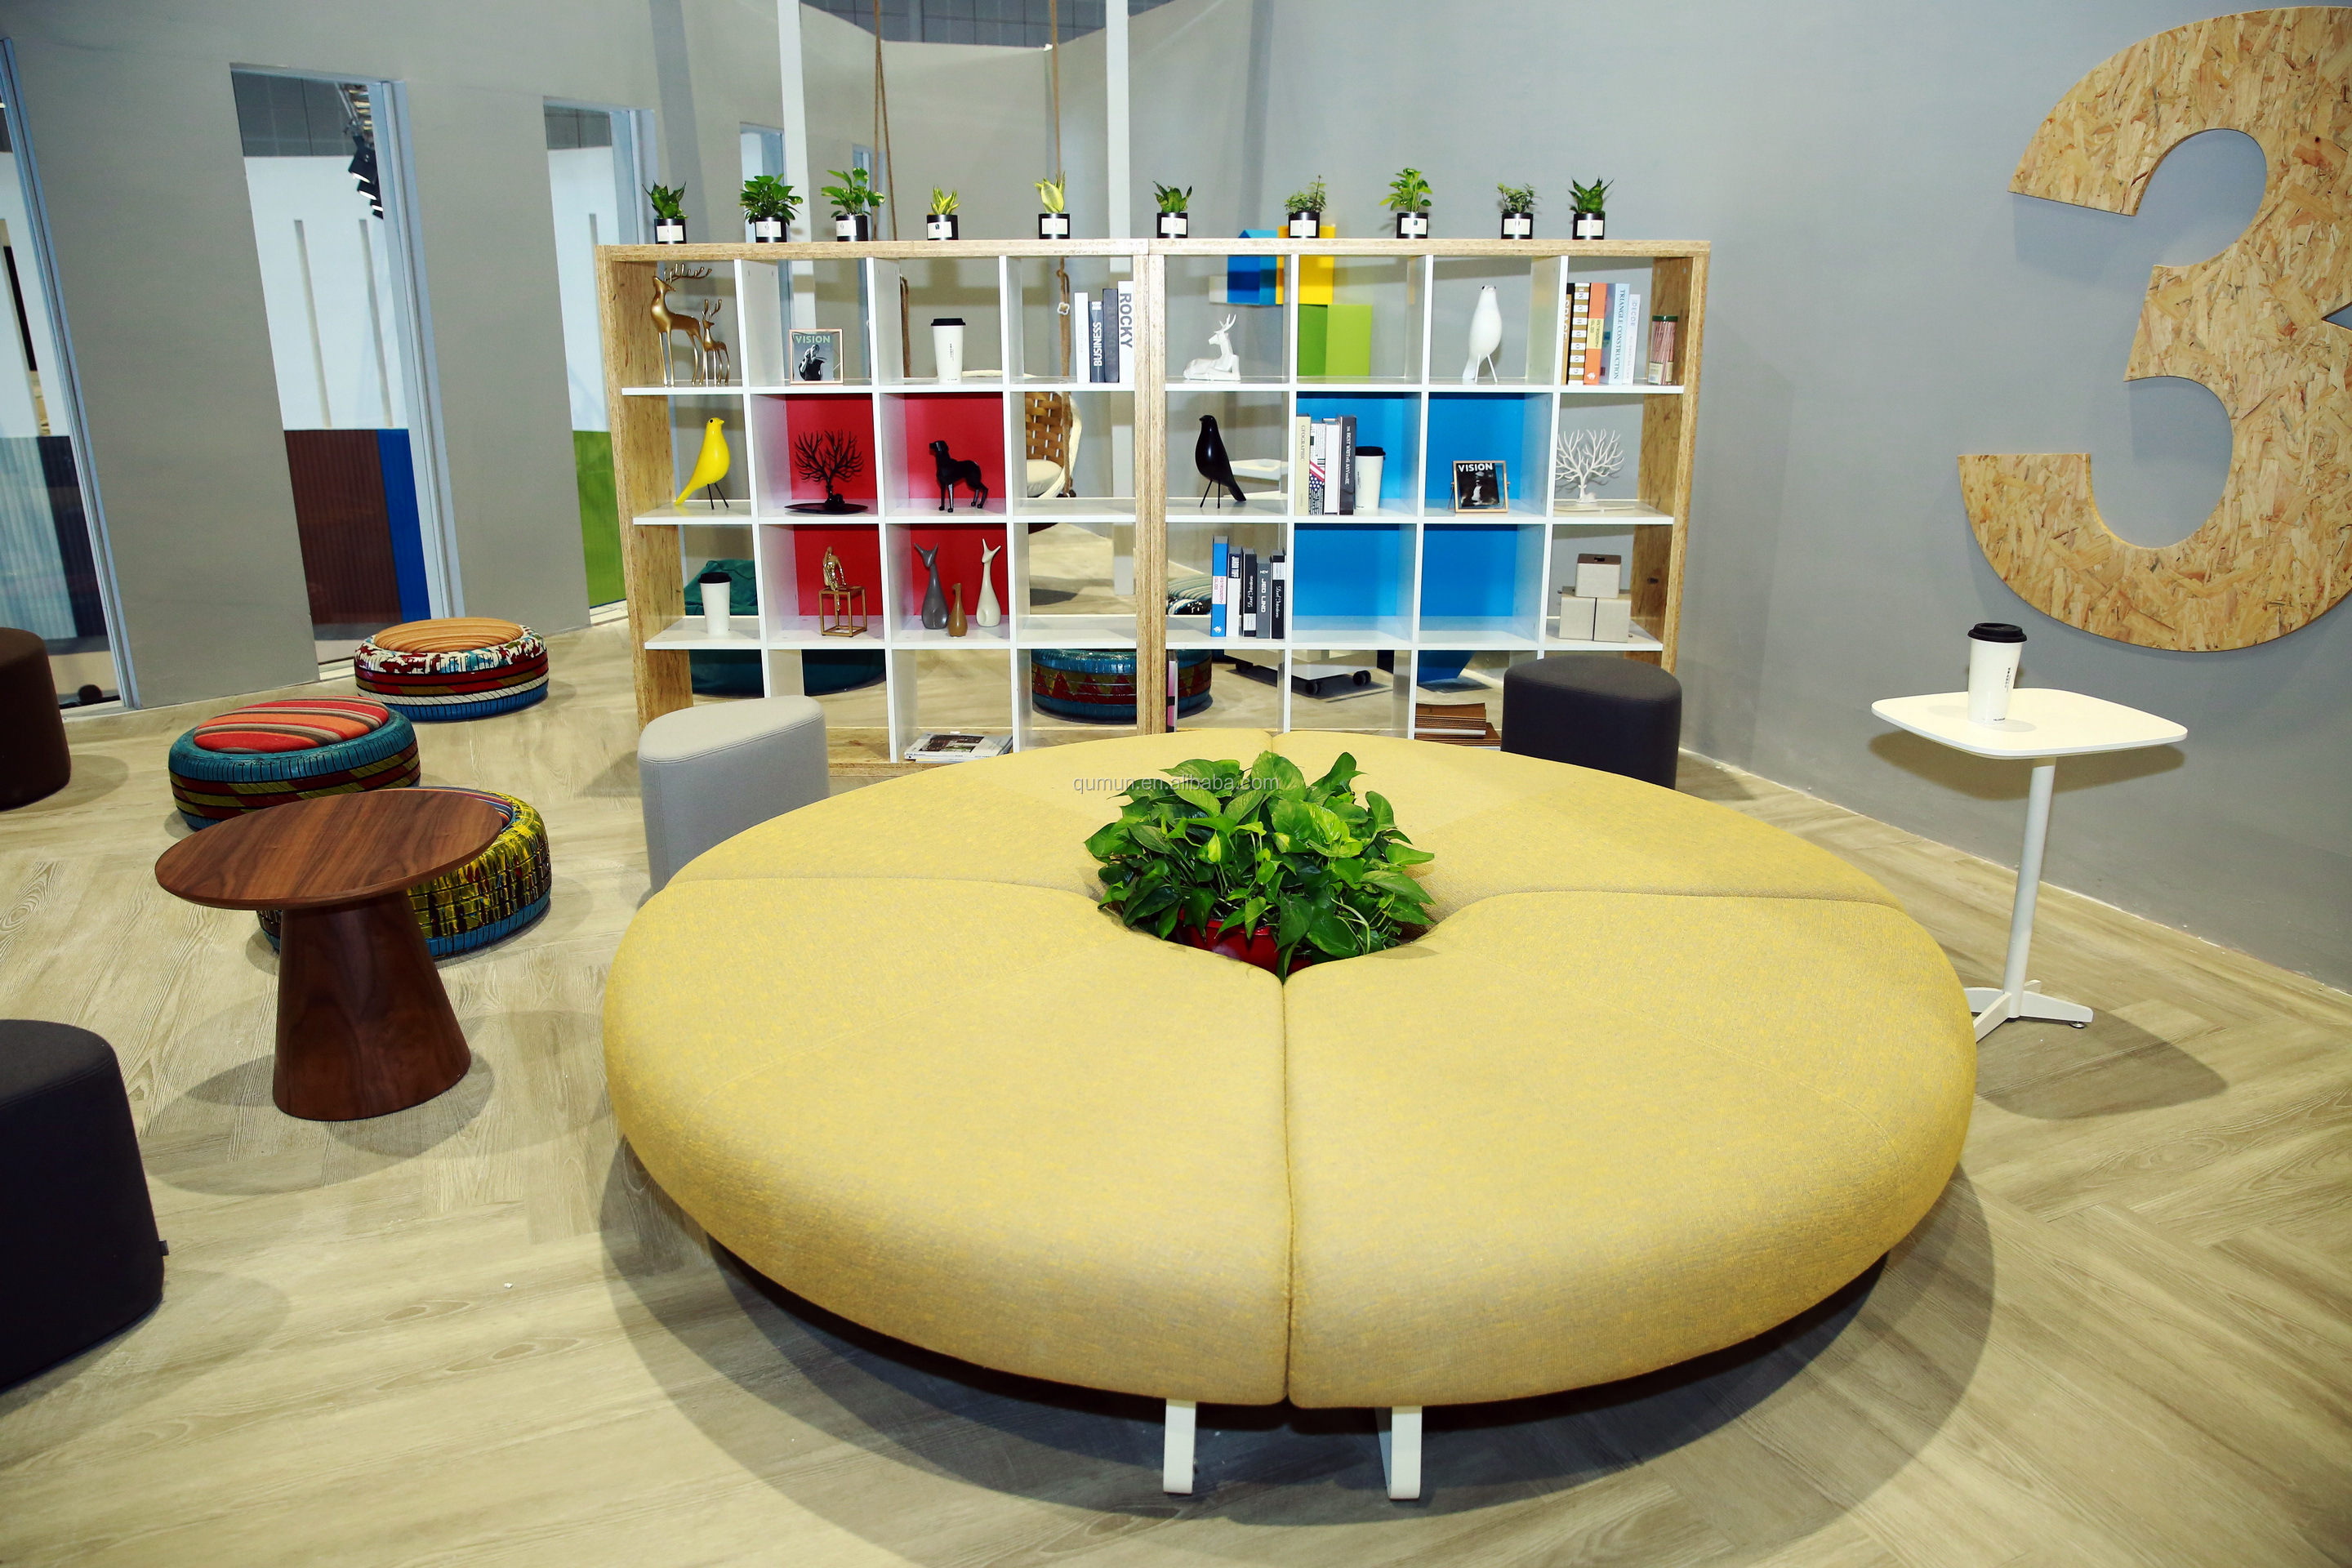 2019 New Style Public Space Modern Office Round Modular Fabric Sofa - Buy  Office Sofa Modern,Round Sofa,Modular Sofa Product on Alibaba.com